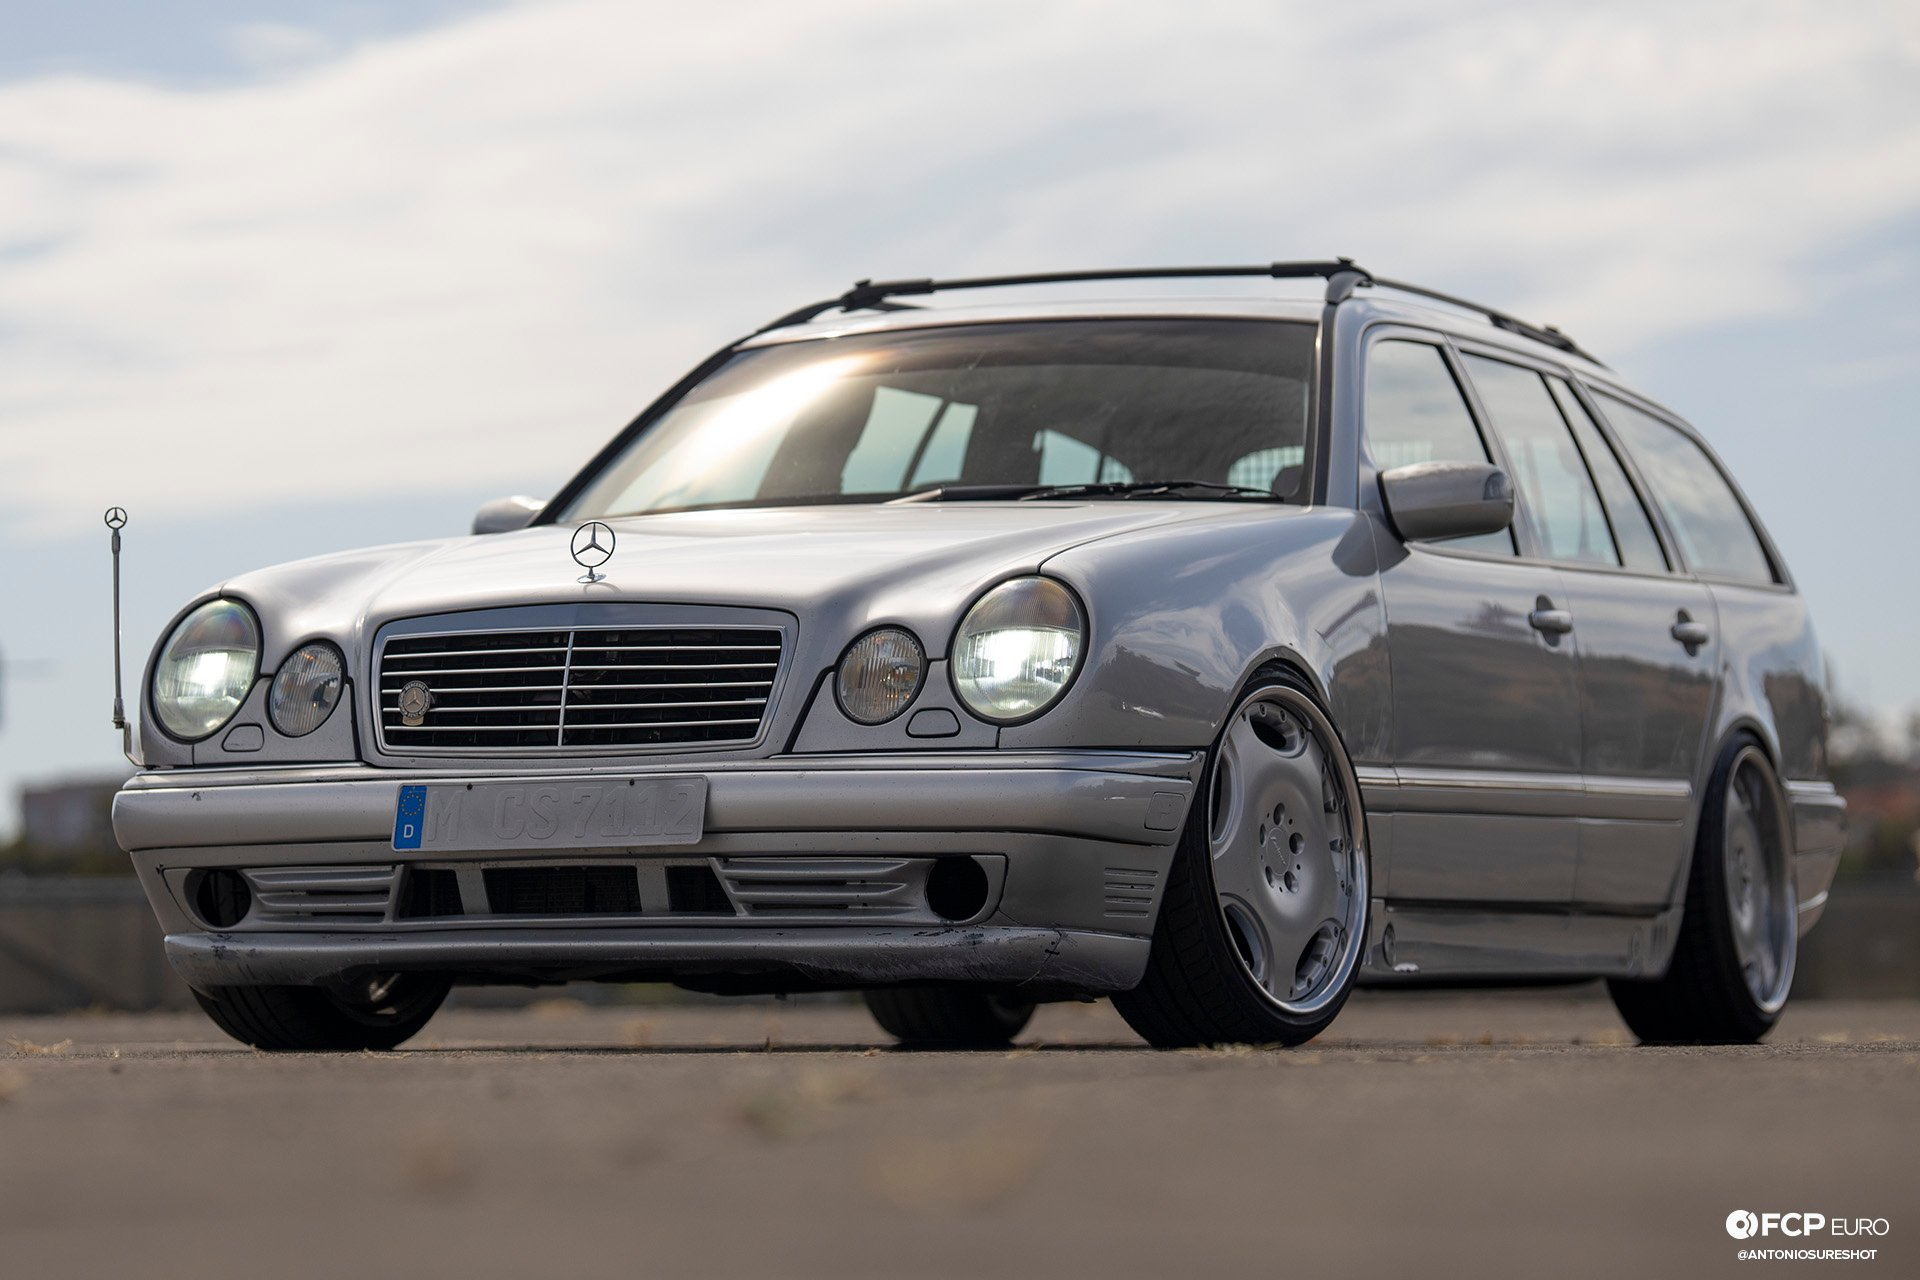 Mercedes Benz AMG E55 swapped E320 wagon 1920wm EOSR2641